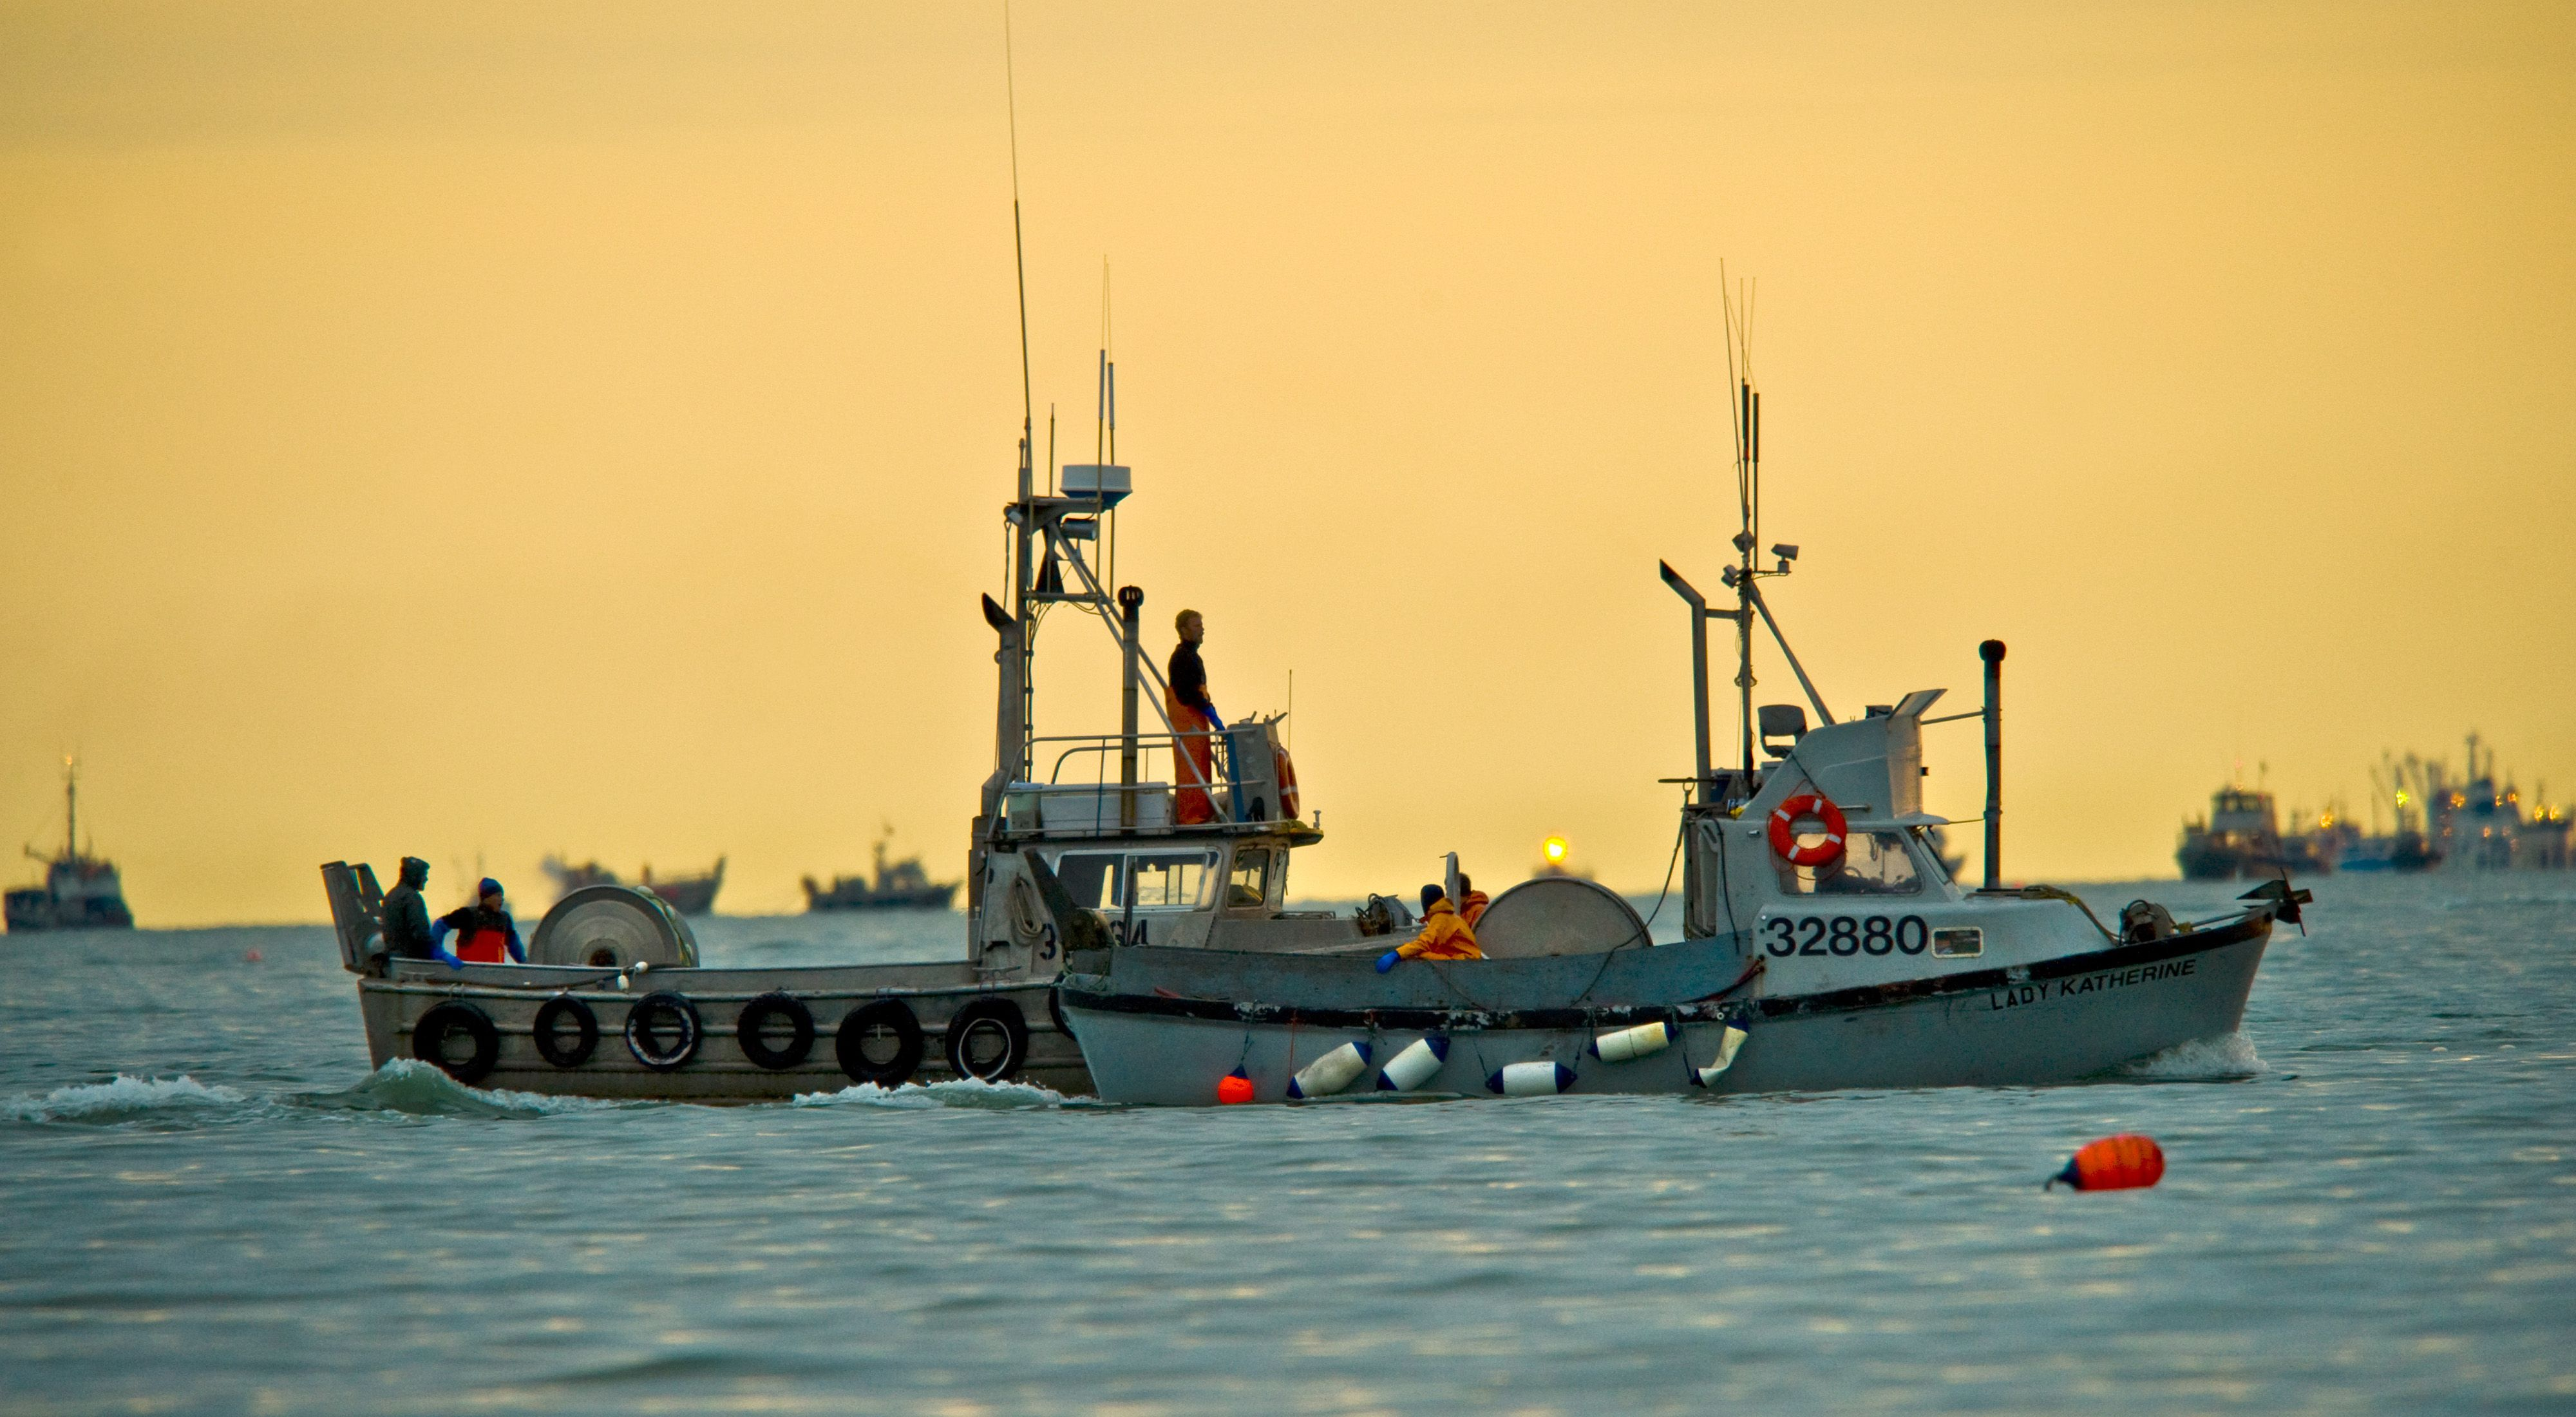 Two commercial fishing boats ply the waters of Alaska's Bristol Bay